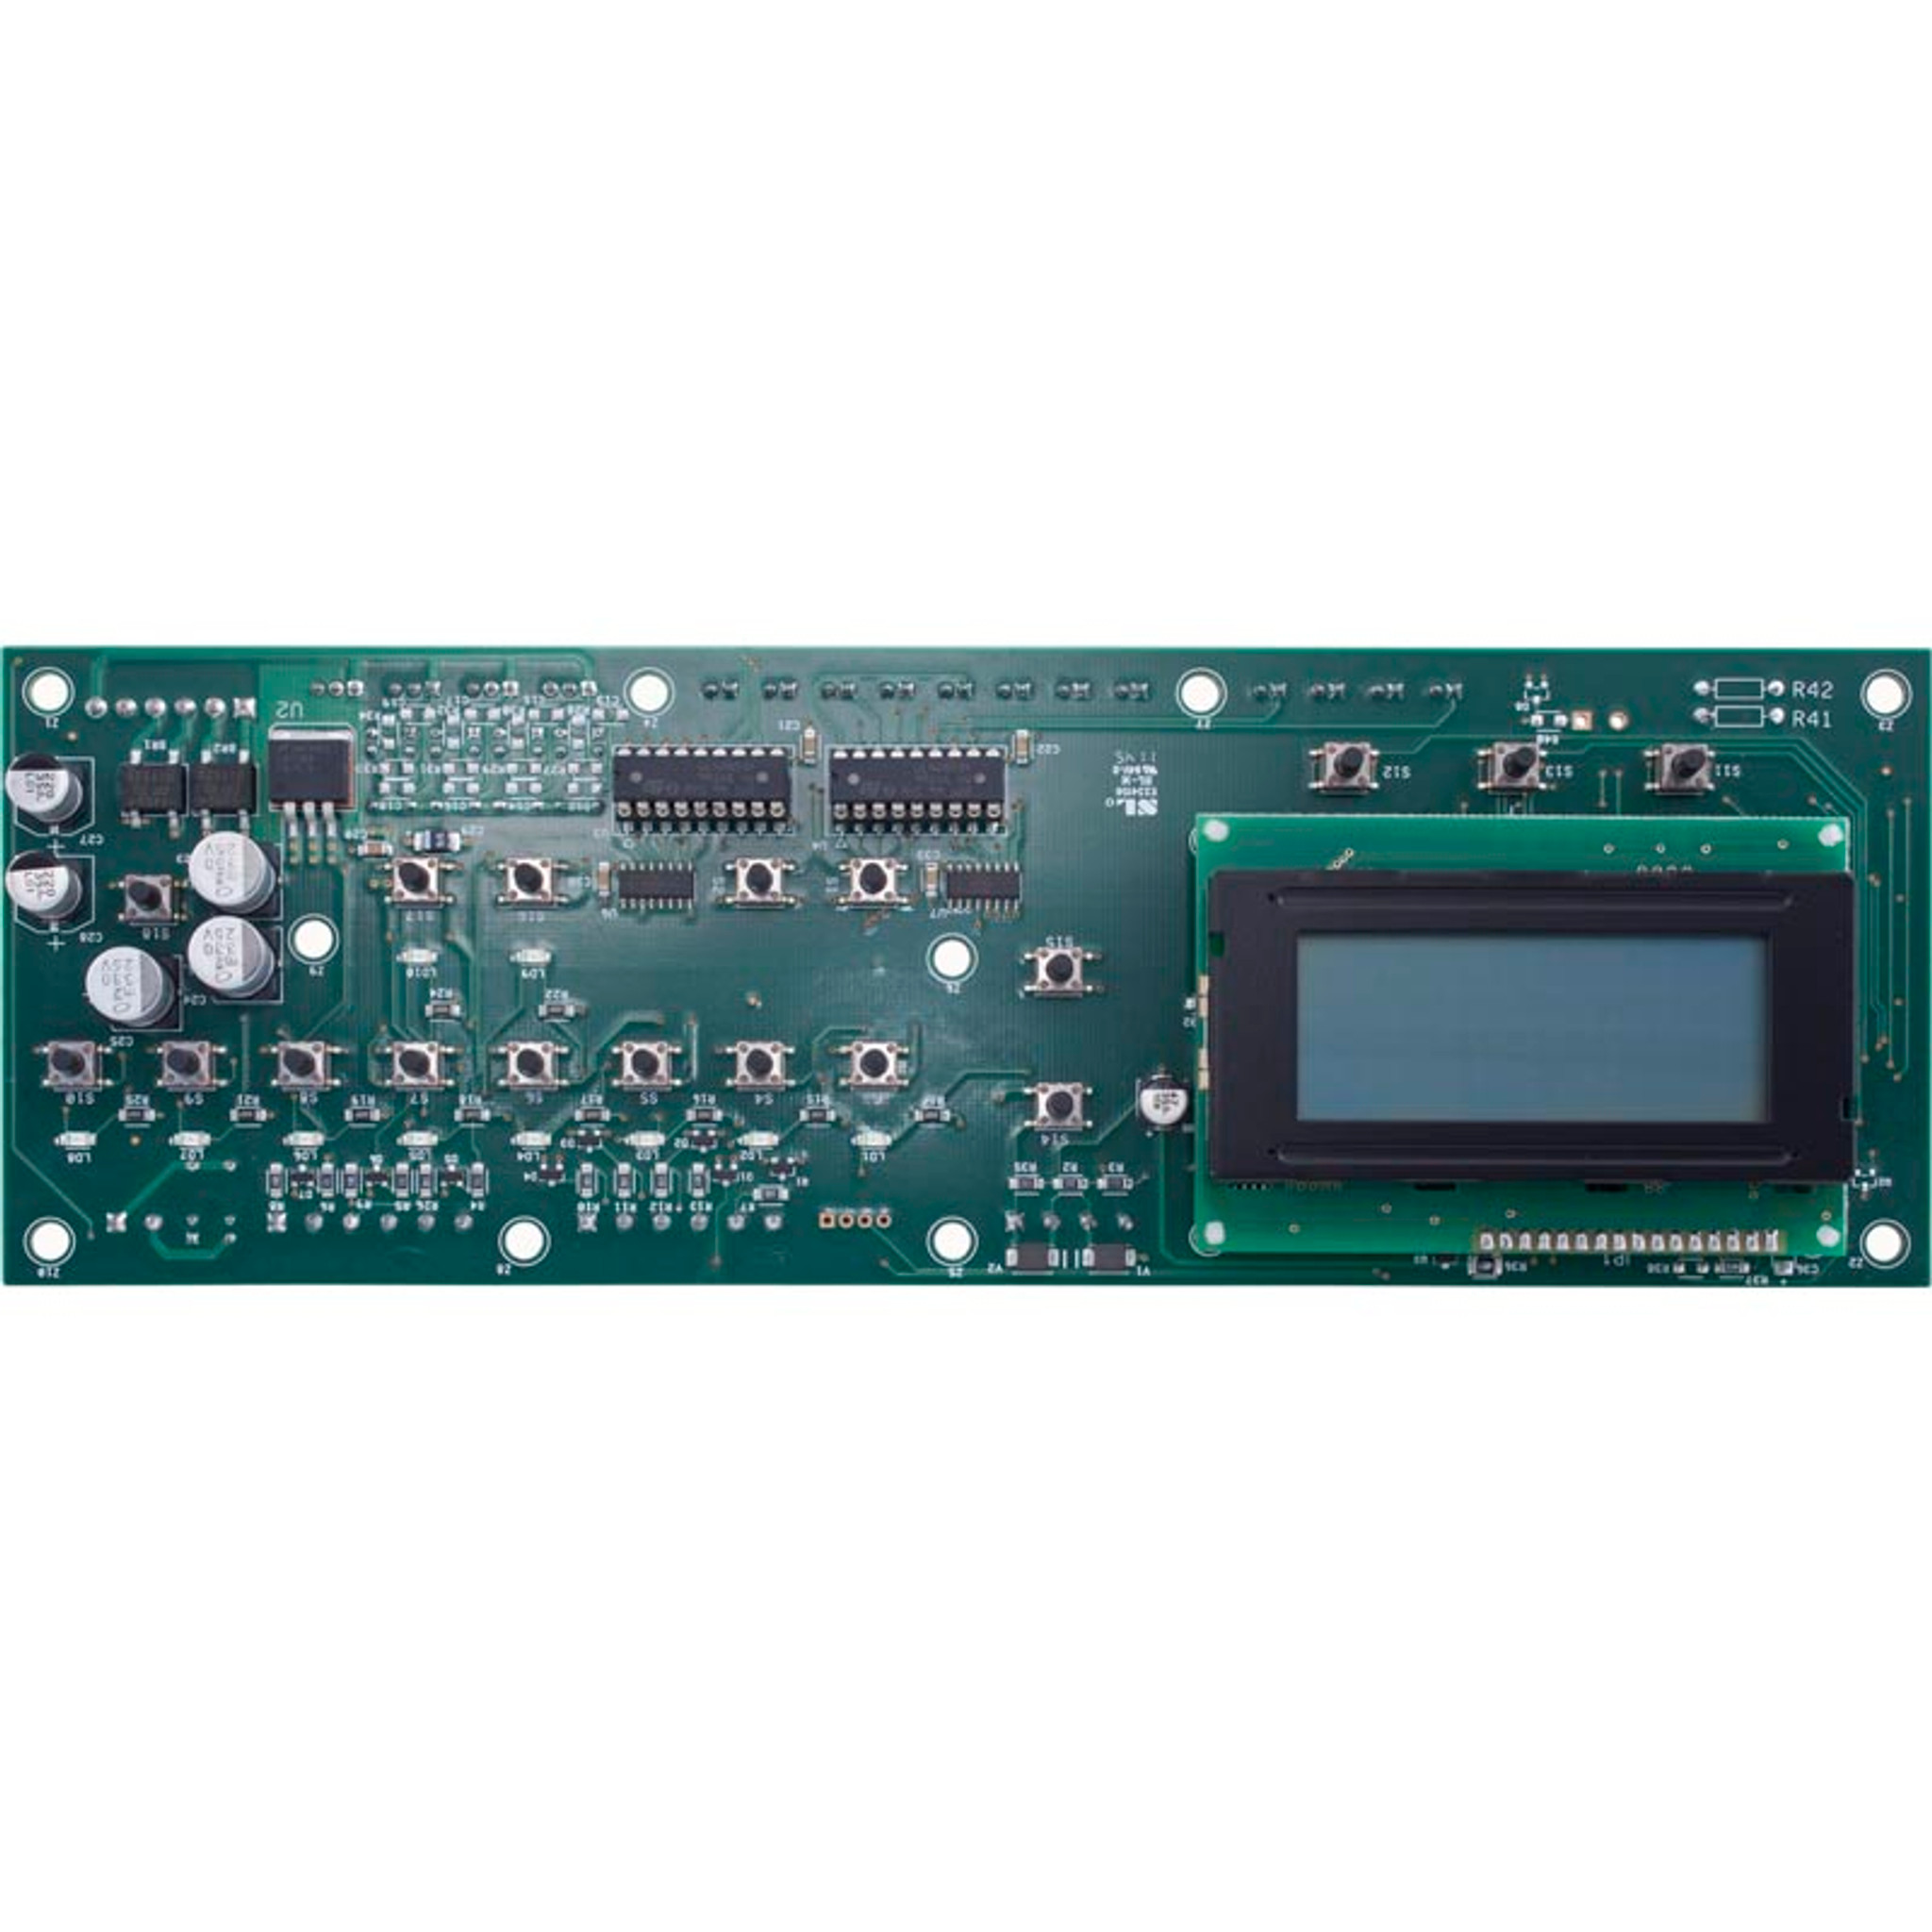 Pentair   EASYTOUCH Control Systems   UOC MOTHERBOARD WITH 4 AUX (Single  Body)   520712